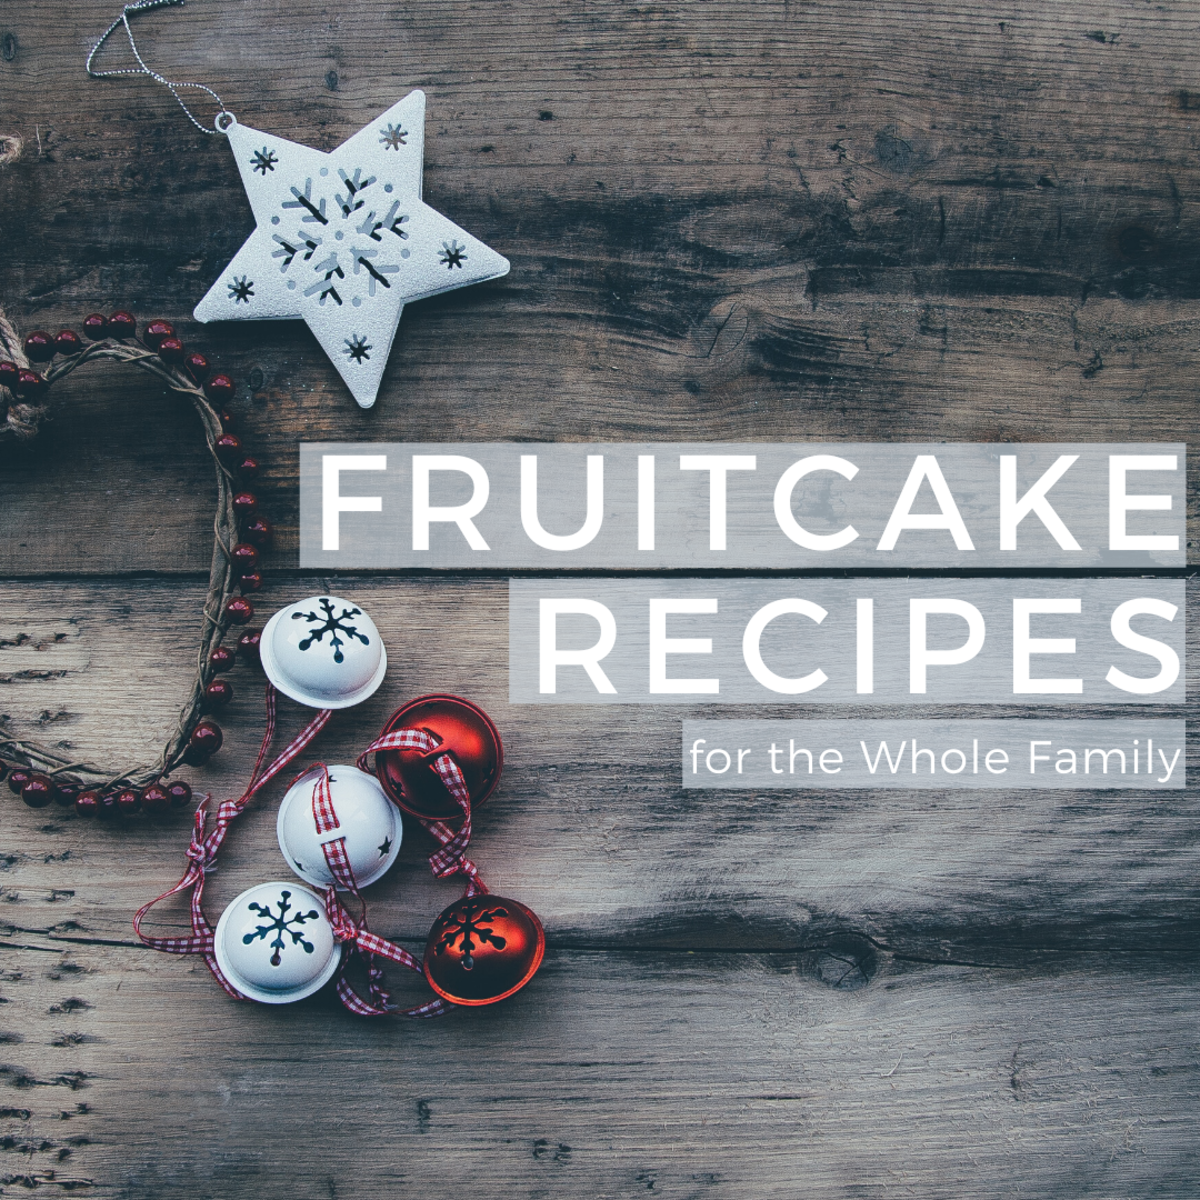 Moist Fruitcake and Fruitcake Cookie Recipes for Christmas